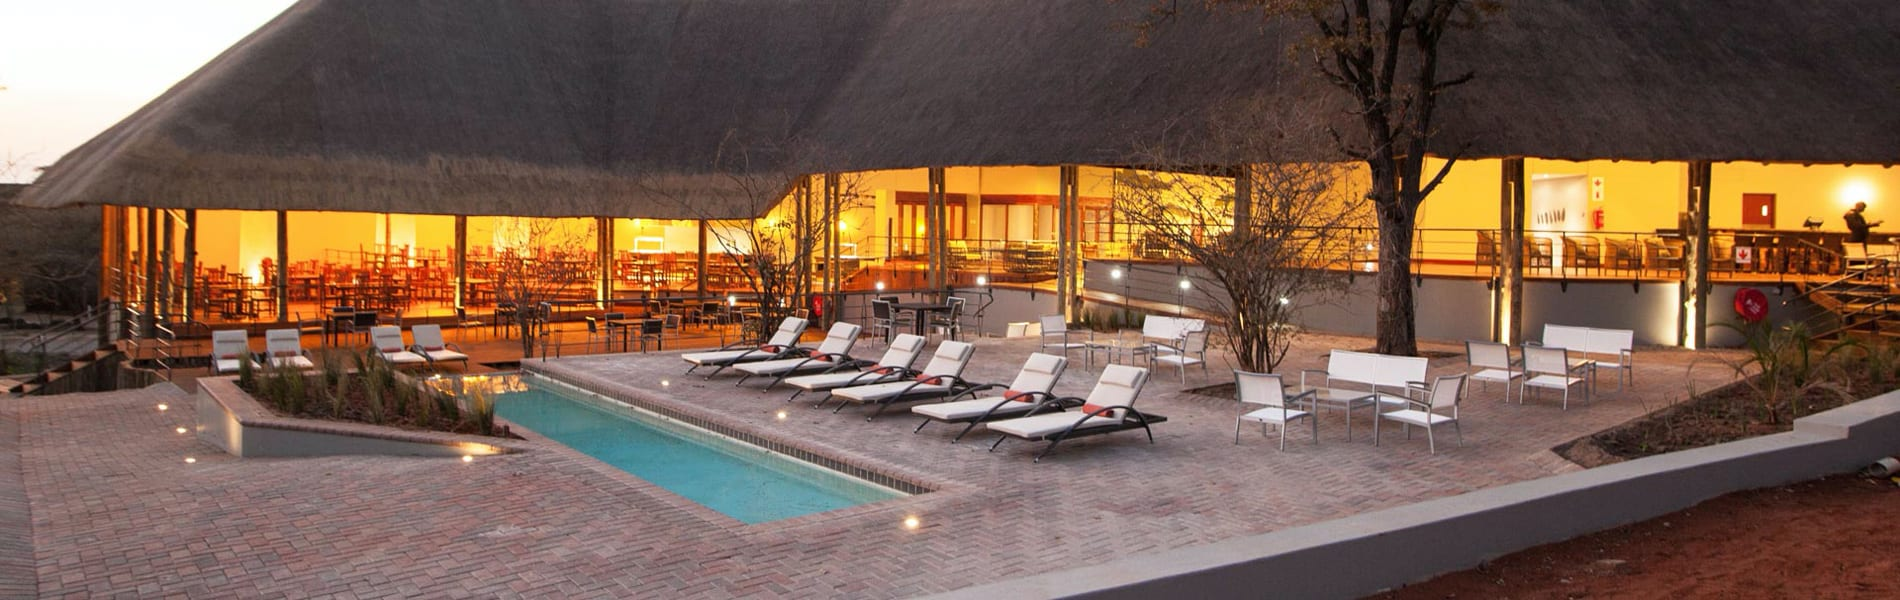 Chobe bush lodge pool area